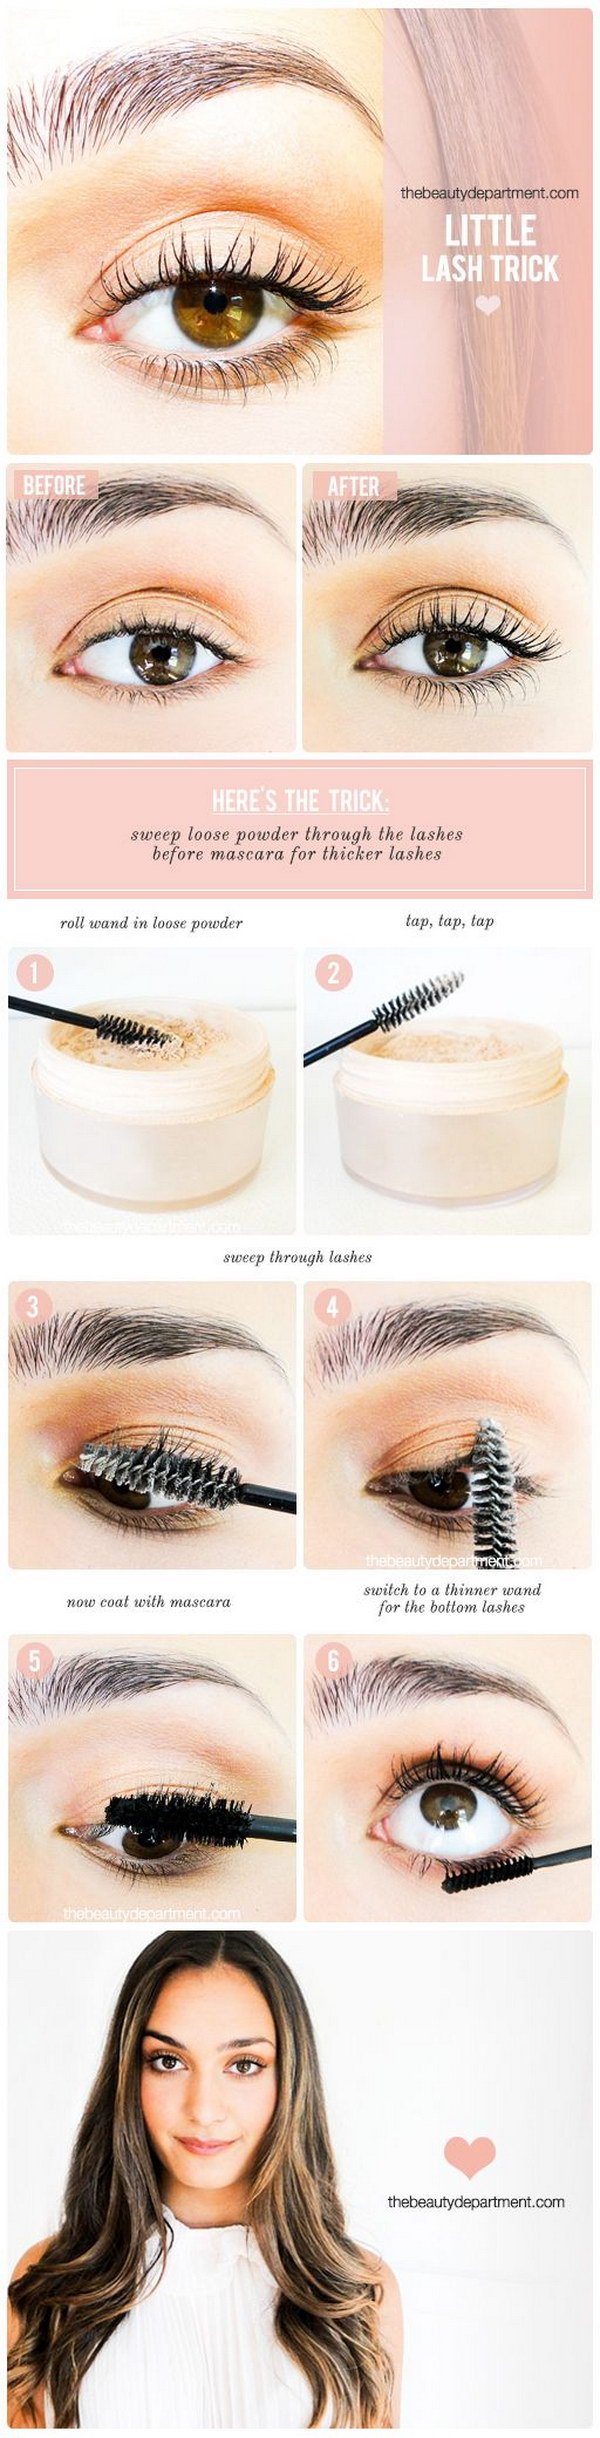 Beauty Tricks To Get Thicker Lashes.